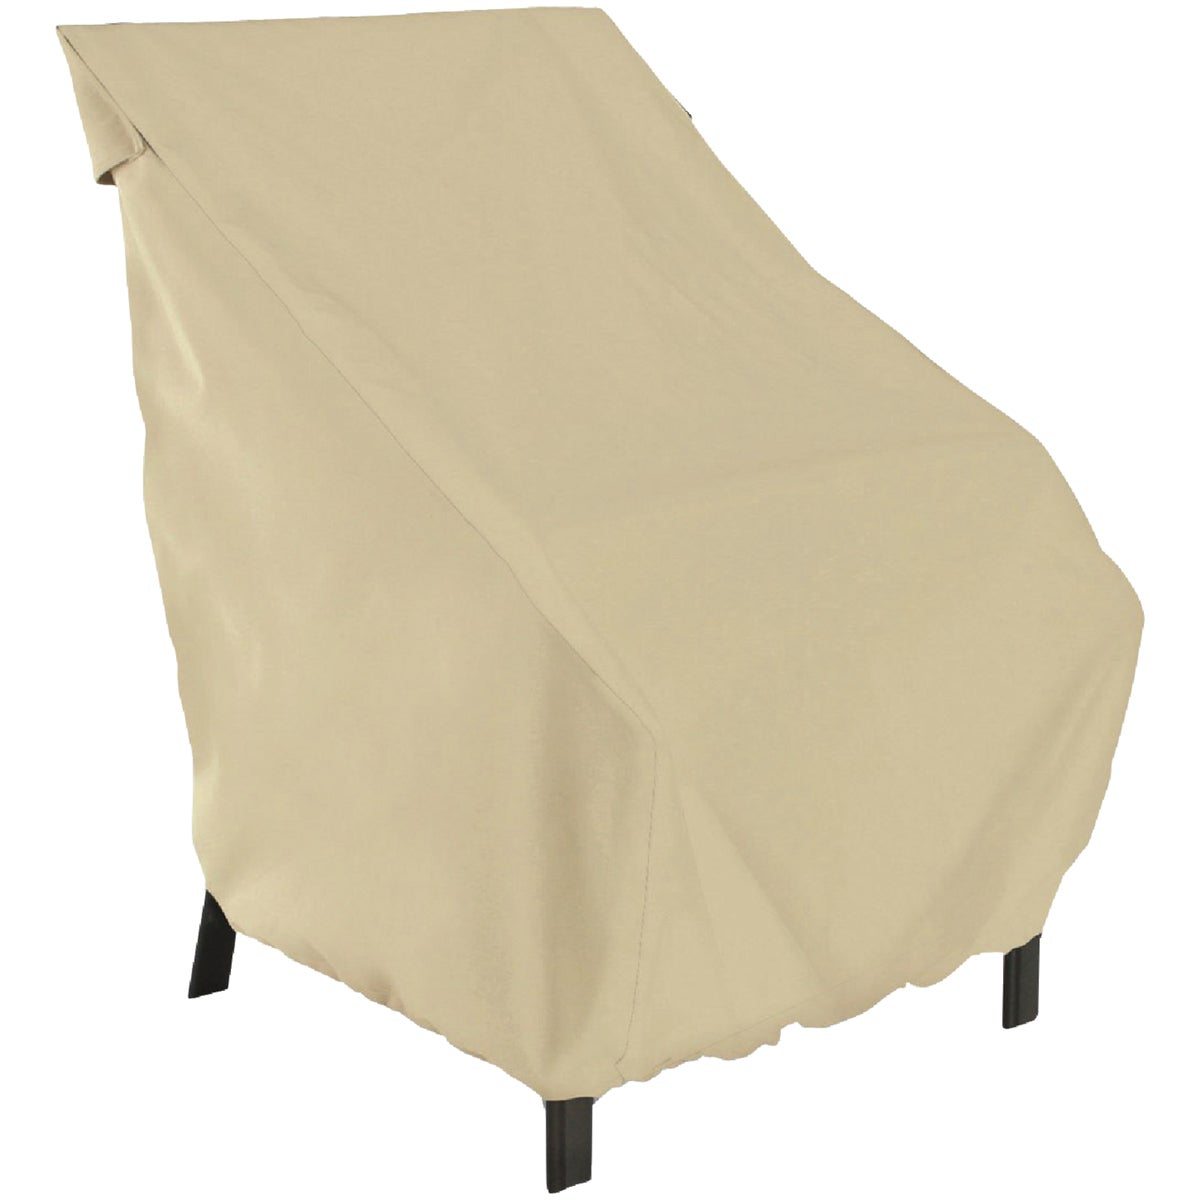 TERAZO PATIO CHAIR COVER - 58912 by Classic Accessories